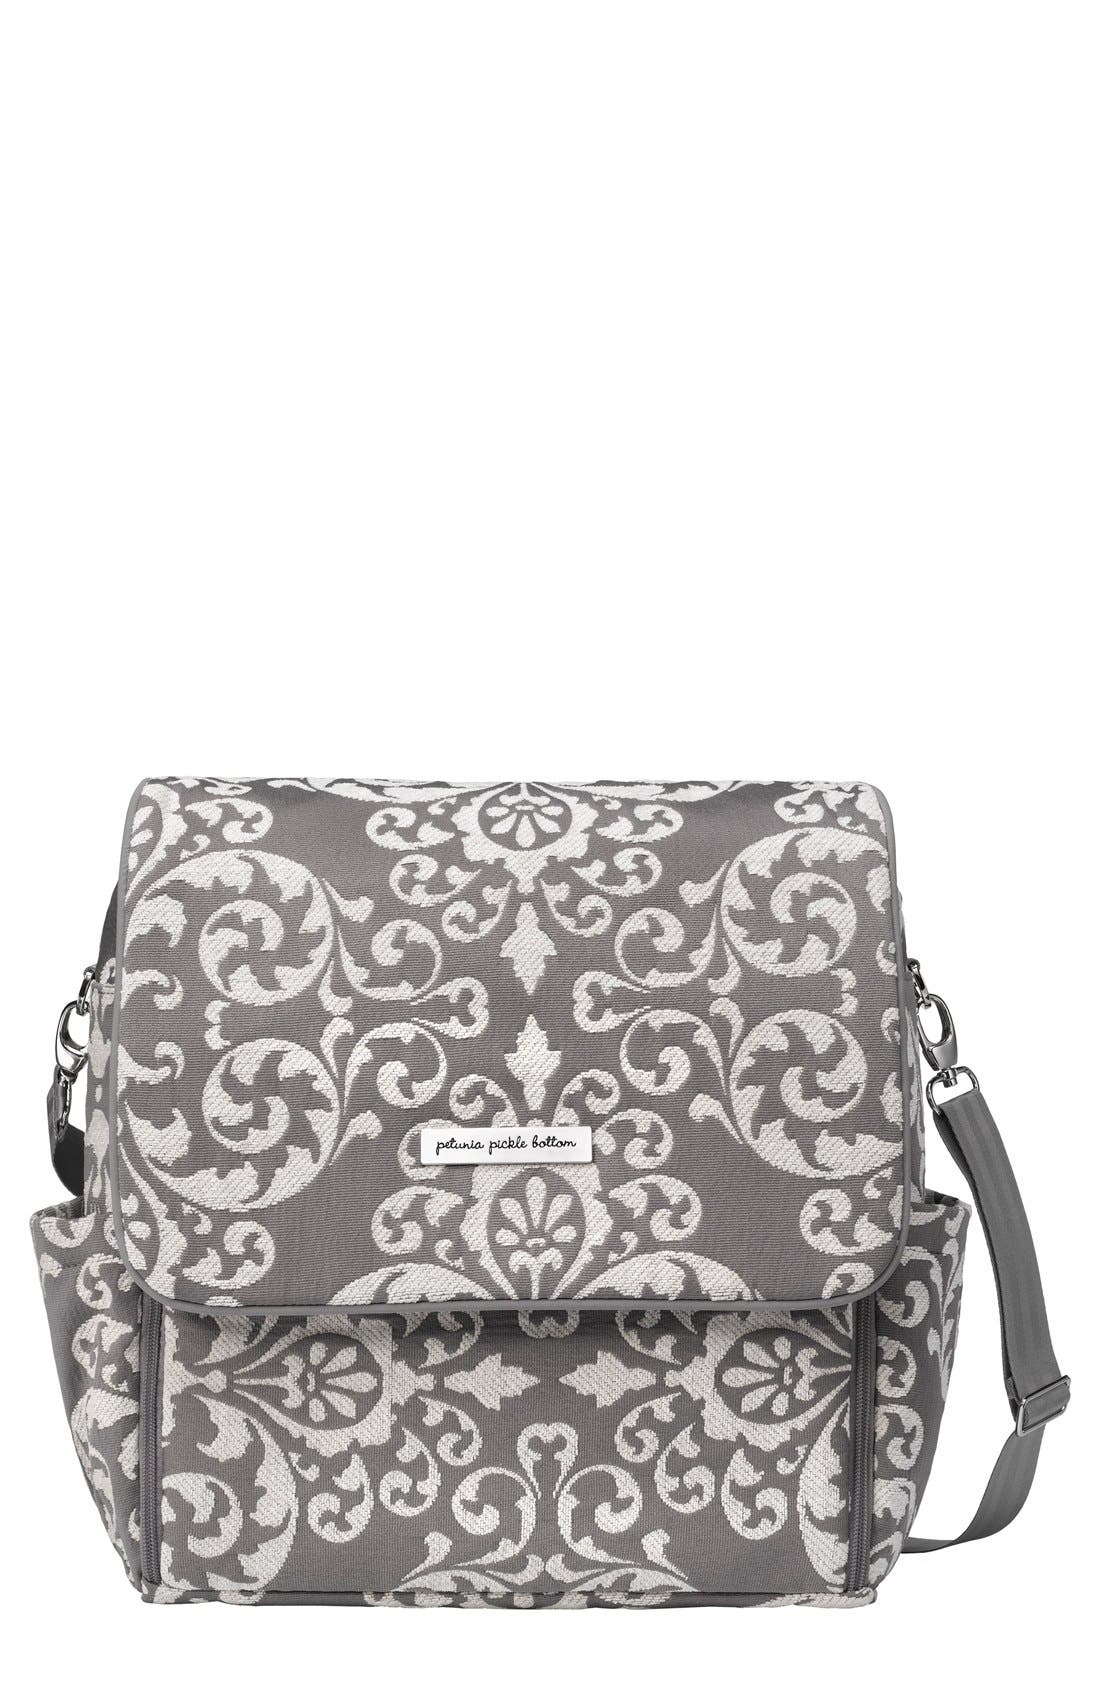 Alternate Image 1 Selected - Petunia Pickle Bottom 'Boxy' Chenille Convertible Diaper Backpack